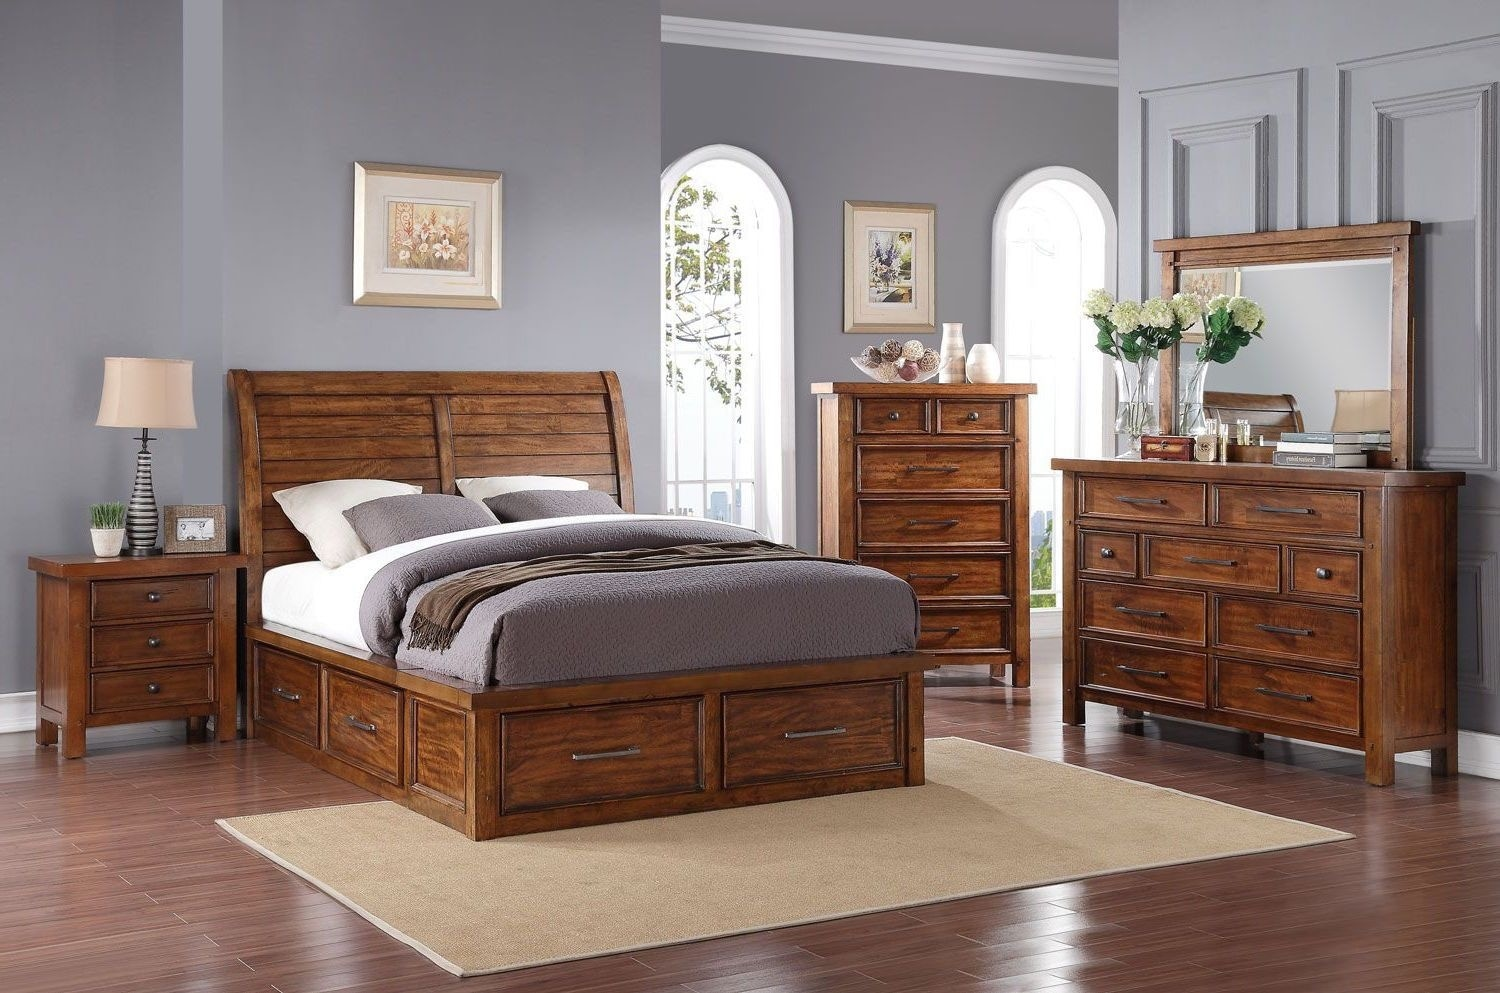 Sonoma 5-Piece Queen Storage Bedroom Package – Medium Brown